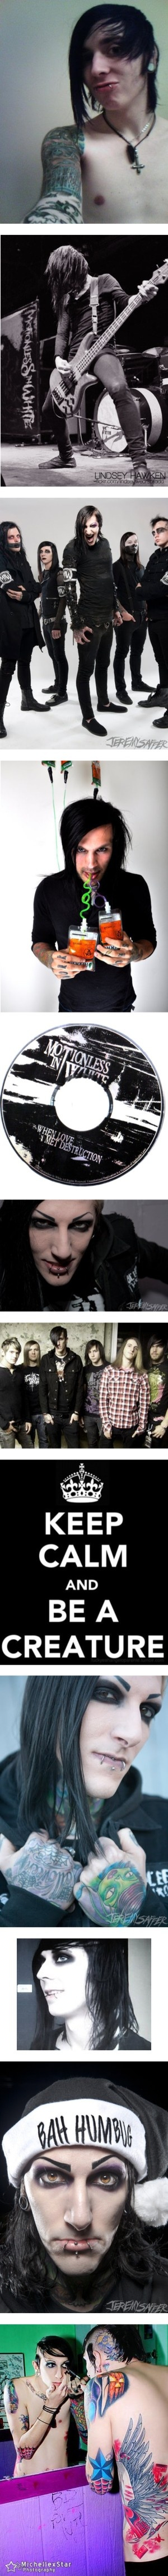 Ricky; Ricky; Ange, Ricky, Chris, Ryan, Balz; Angelo; When Love Met Destruction; Chris; TJ, Mikey, Chris, Balz, Frank, Ange; Creature; Chris; Ricky; Chris; Chris  yes, i took the time for that